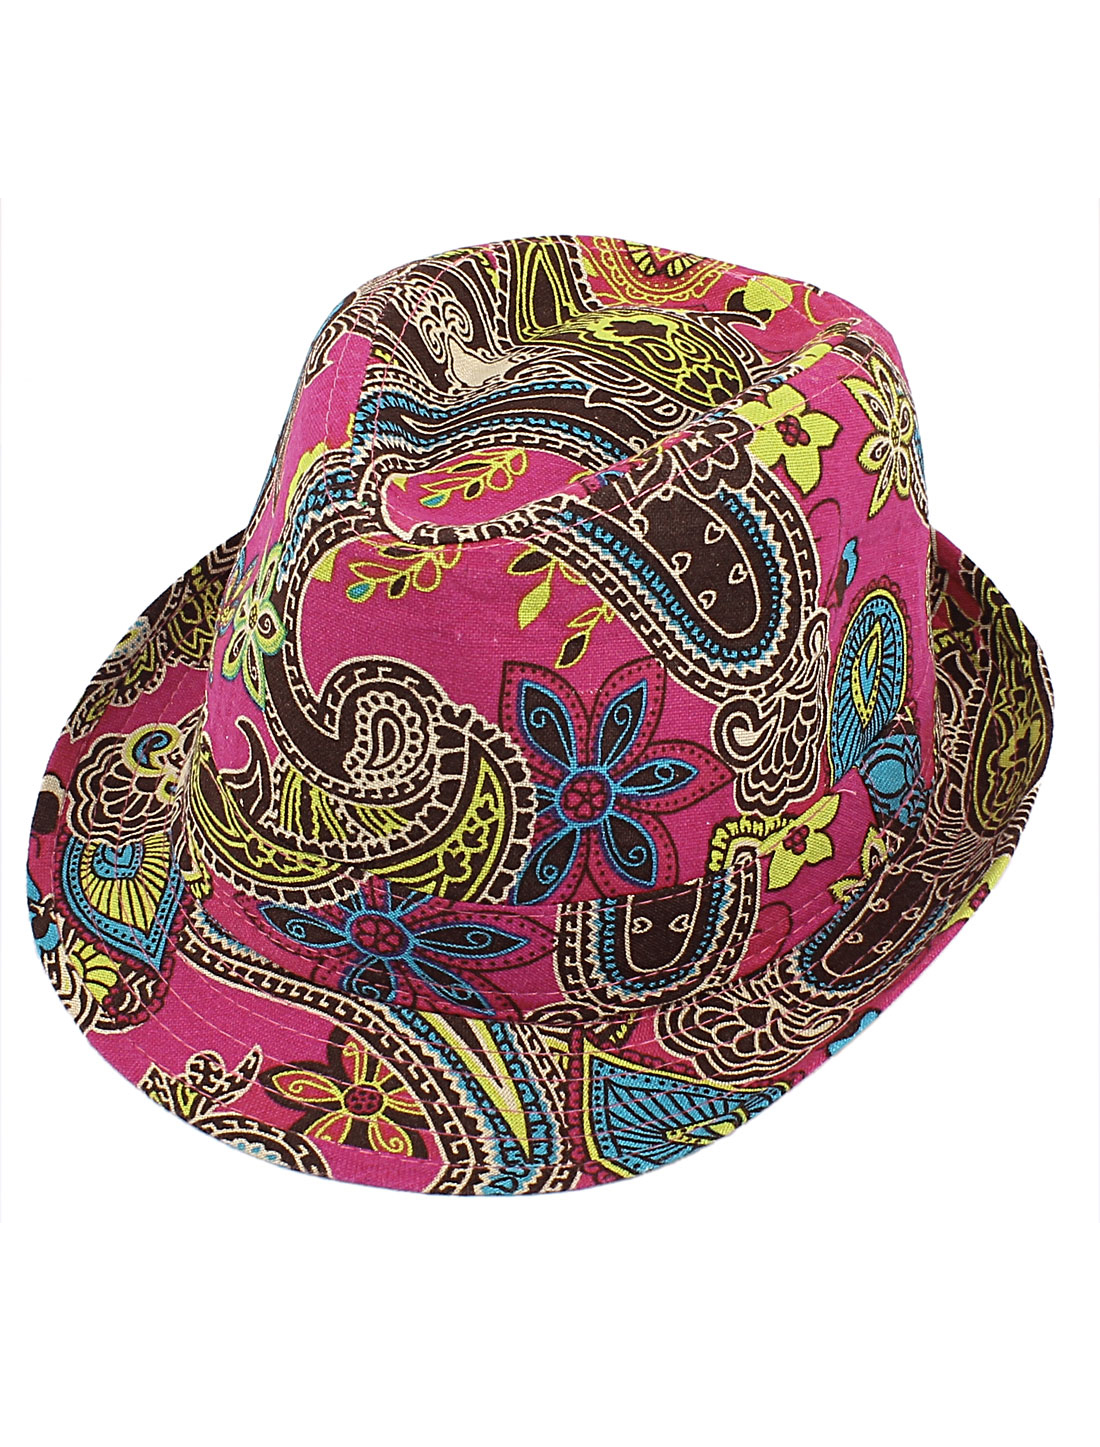 Men Women Unisex Flower Paisley Pattern Fedora Short Brim Cap Sun Hat Fuchsia